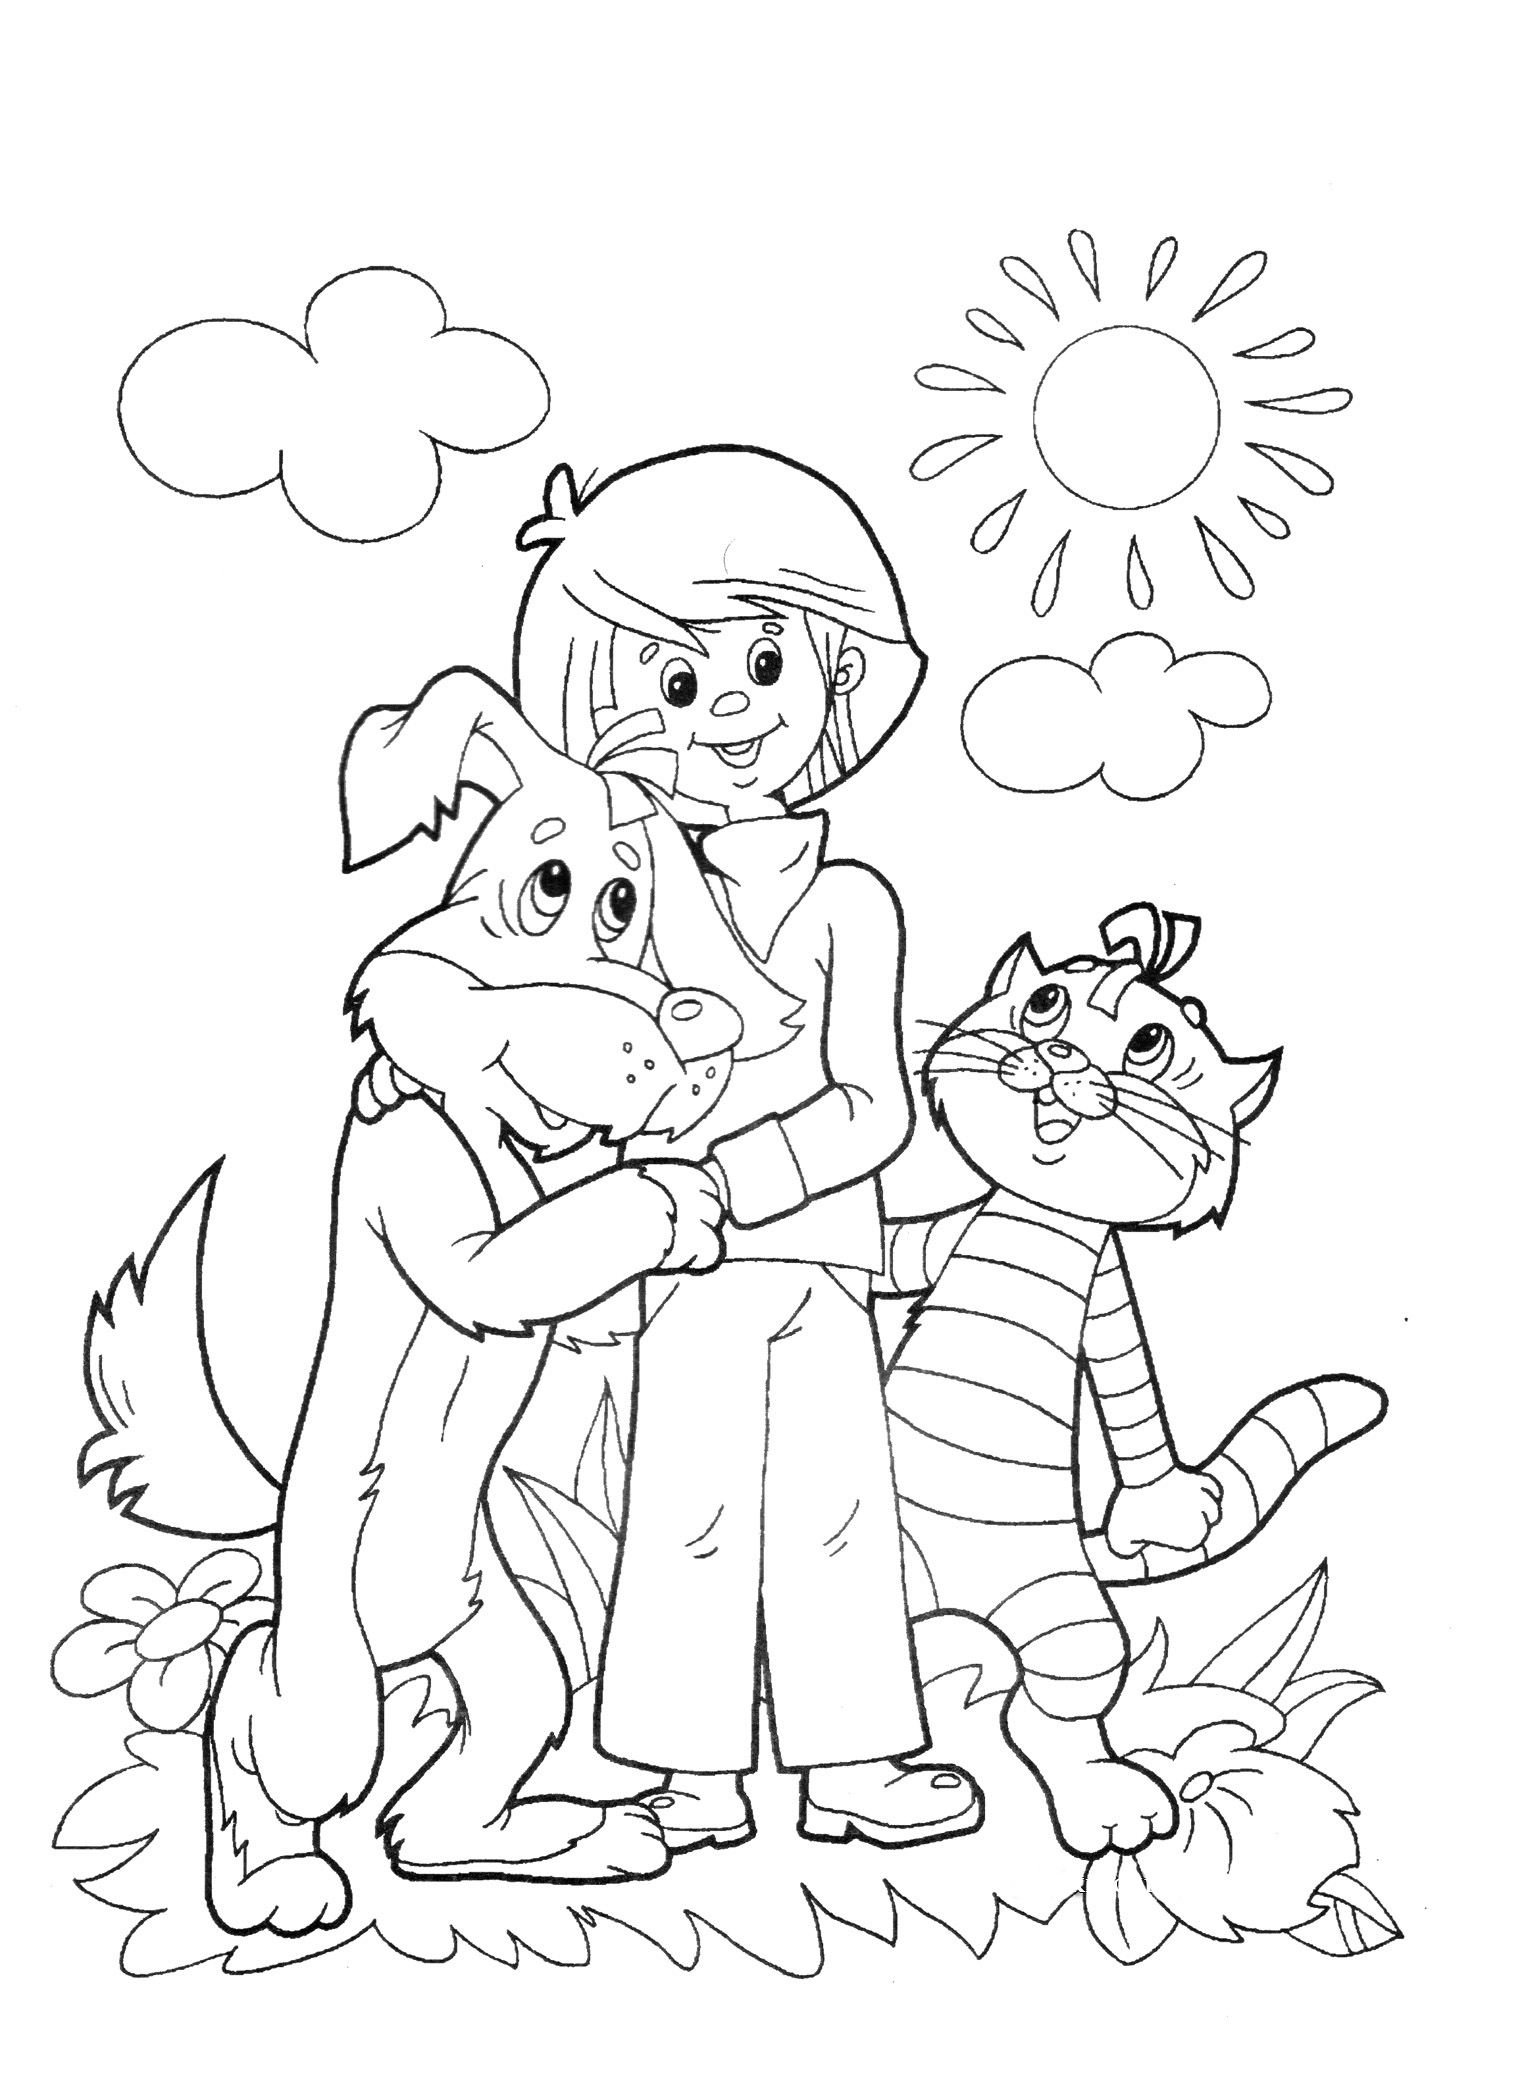 free printable friendship coloring pages - photo#43